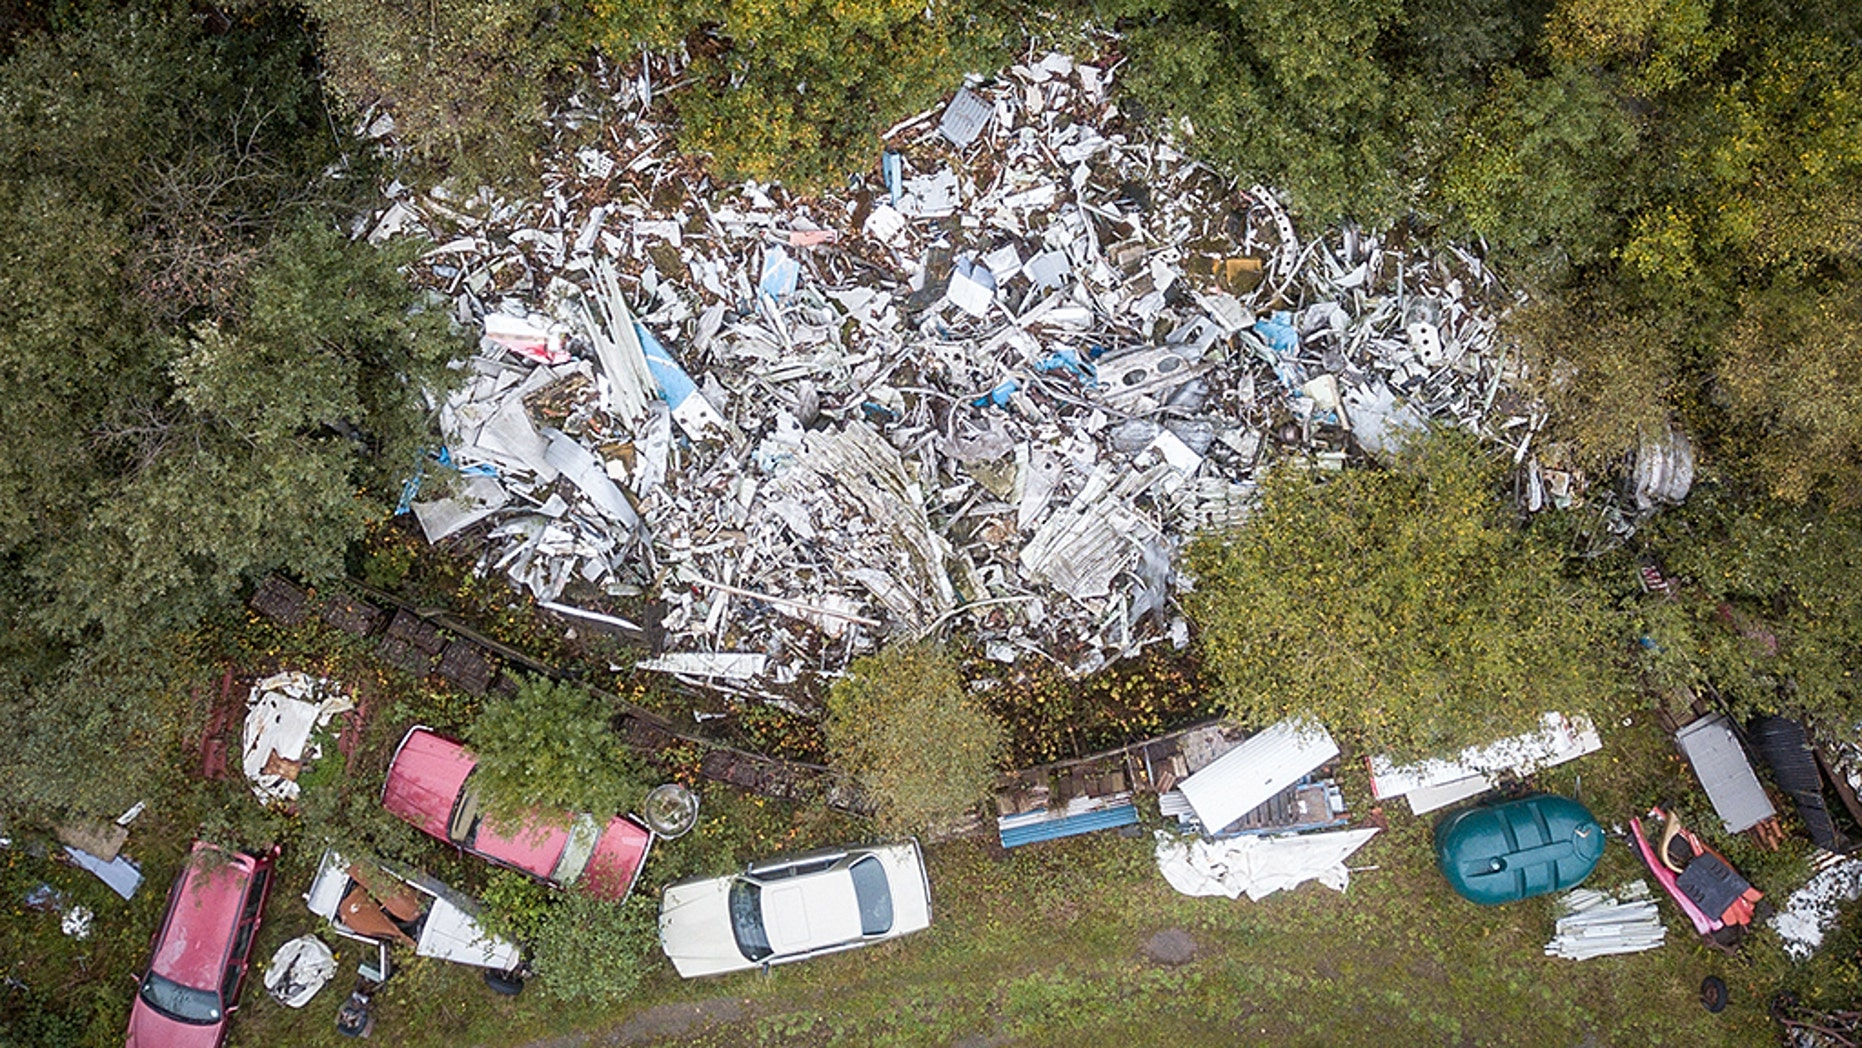 The wreckage of Pam Am flight 103, 30 years after the Lockerbie disaster, lays in a scrap yard in Tattershall, Lincolnshire, UK.